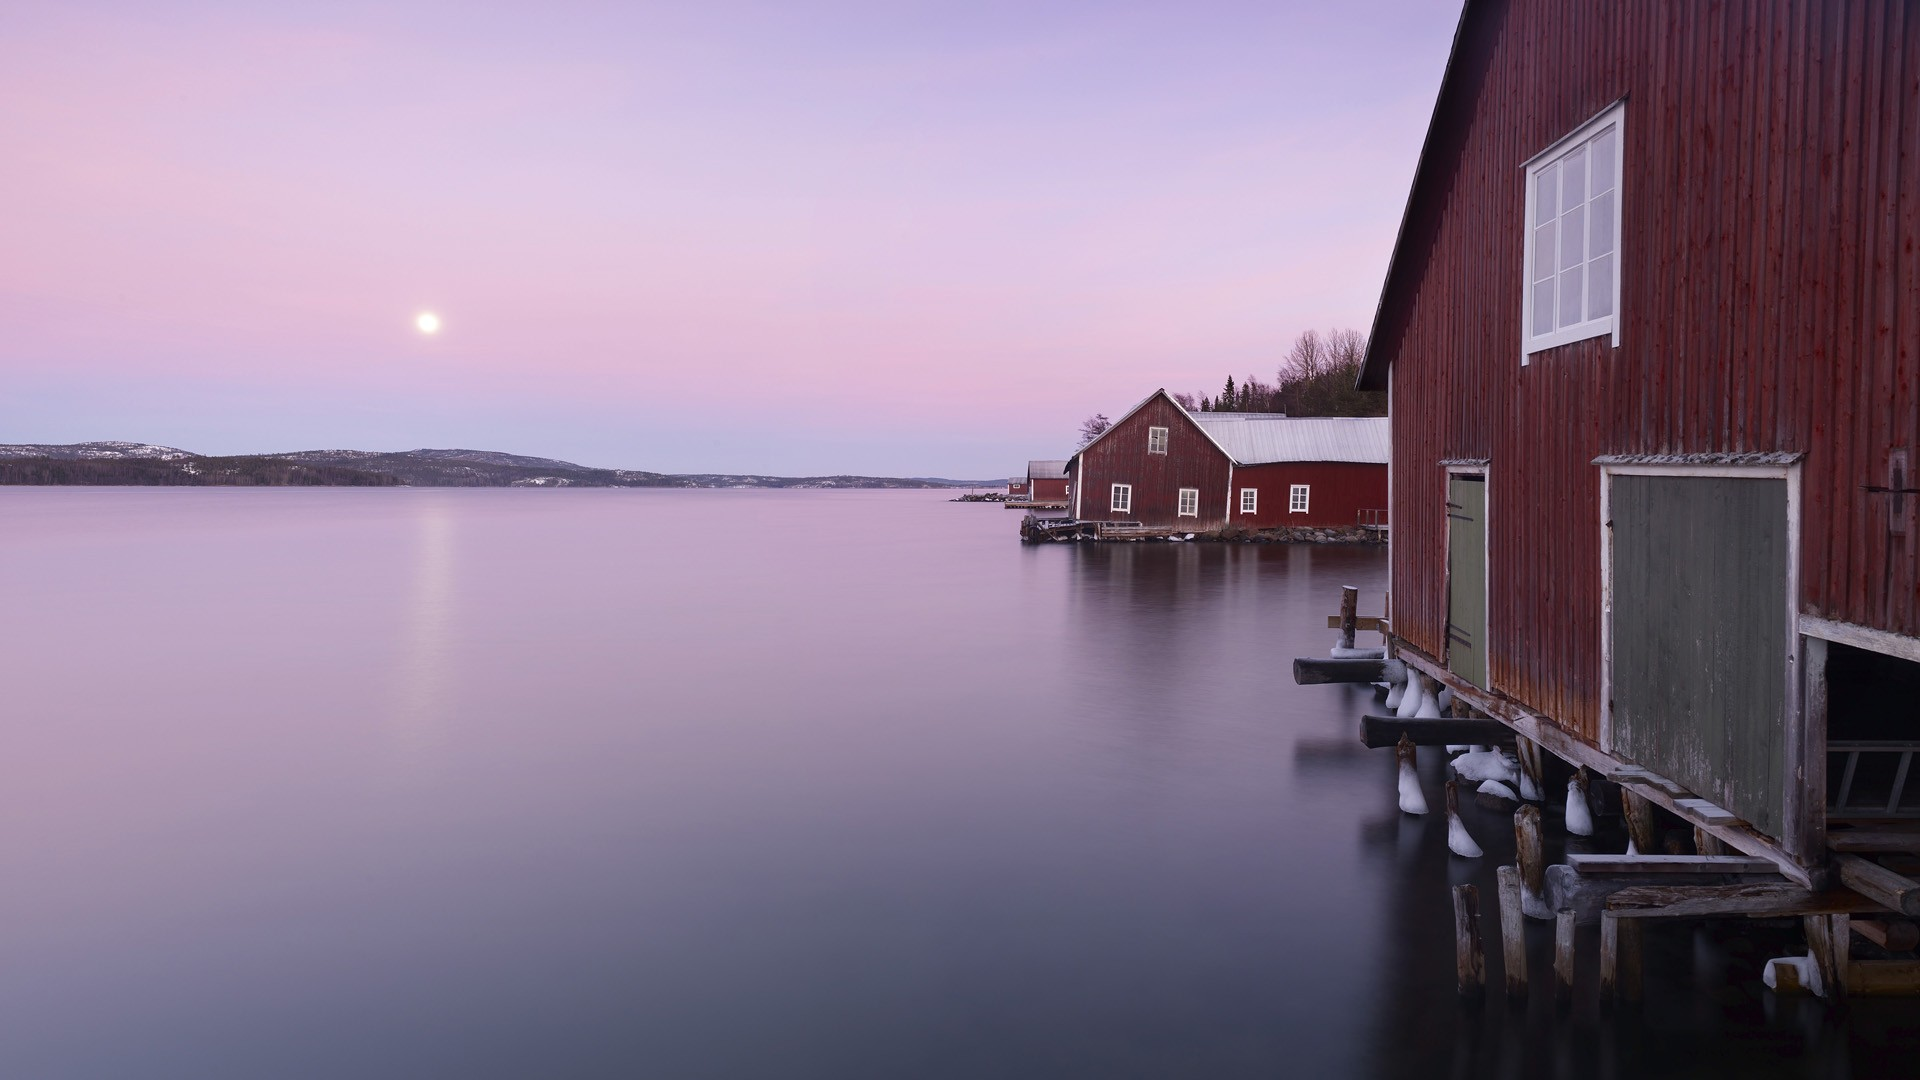 Computer Swedish Landscape Wallpapers, Desktop Backgrounds 1920x1080